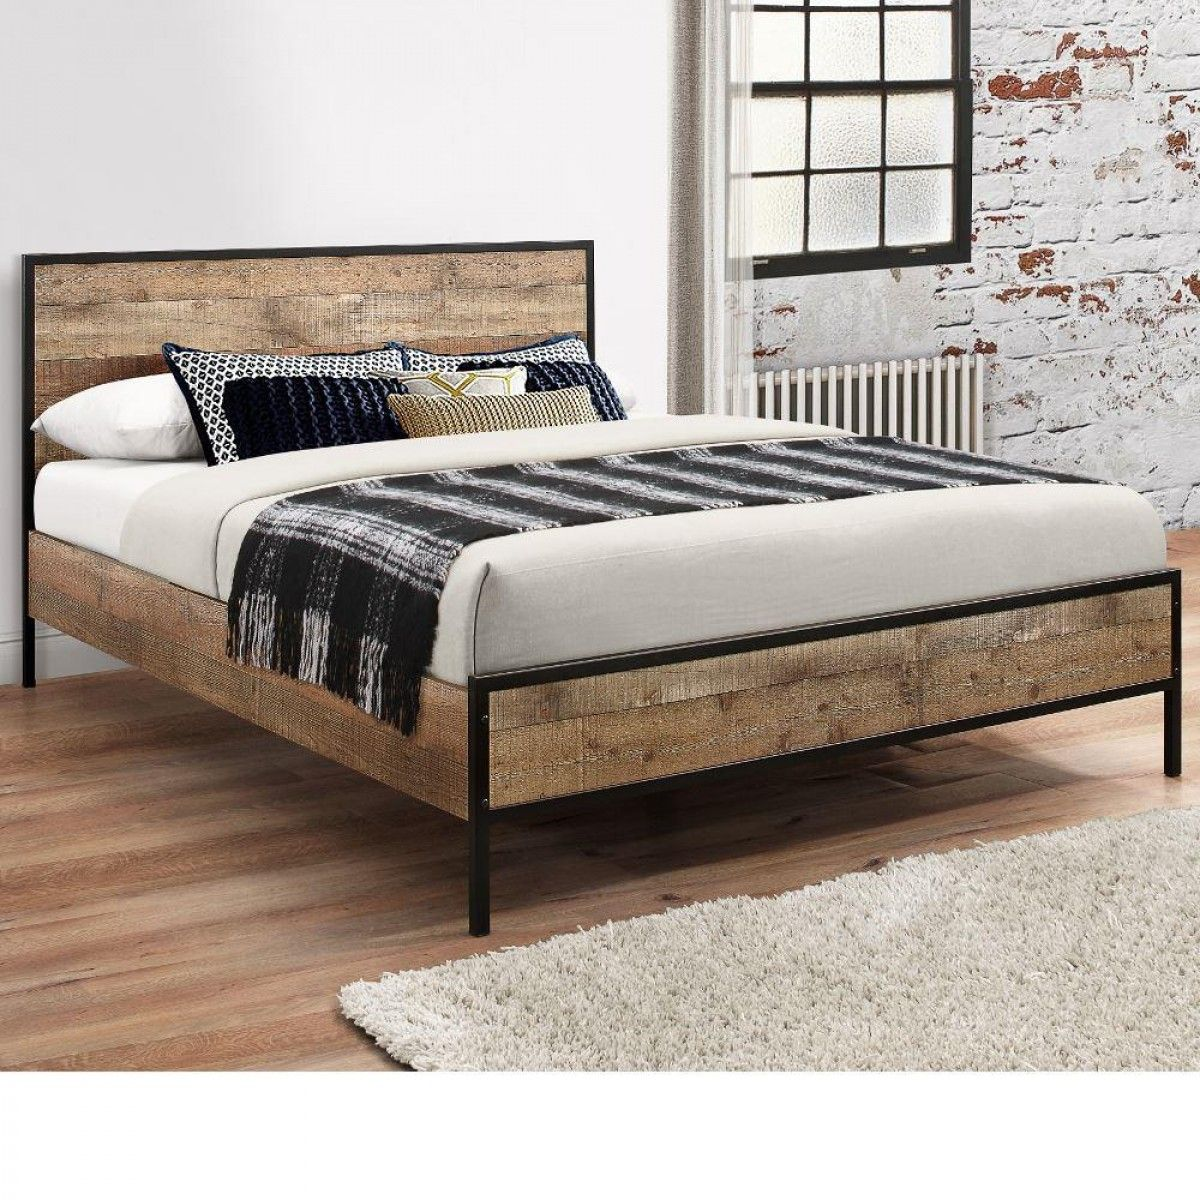 Urban Rustic Wooden And Metal Bed Wooden King Size Bed Rustic Bed Frame Rustic Bedding